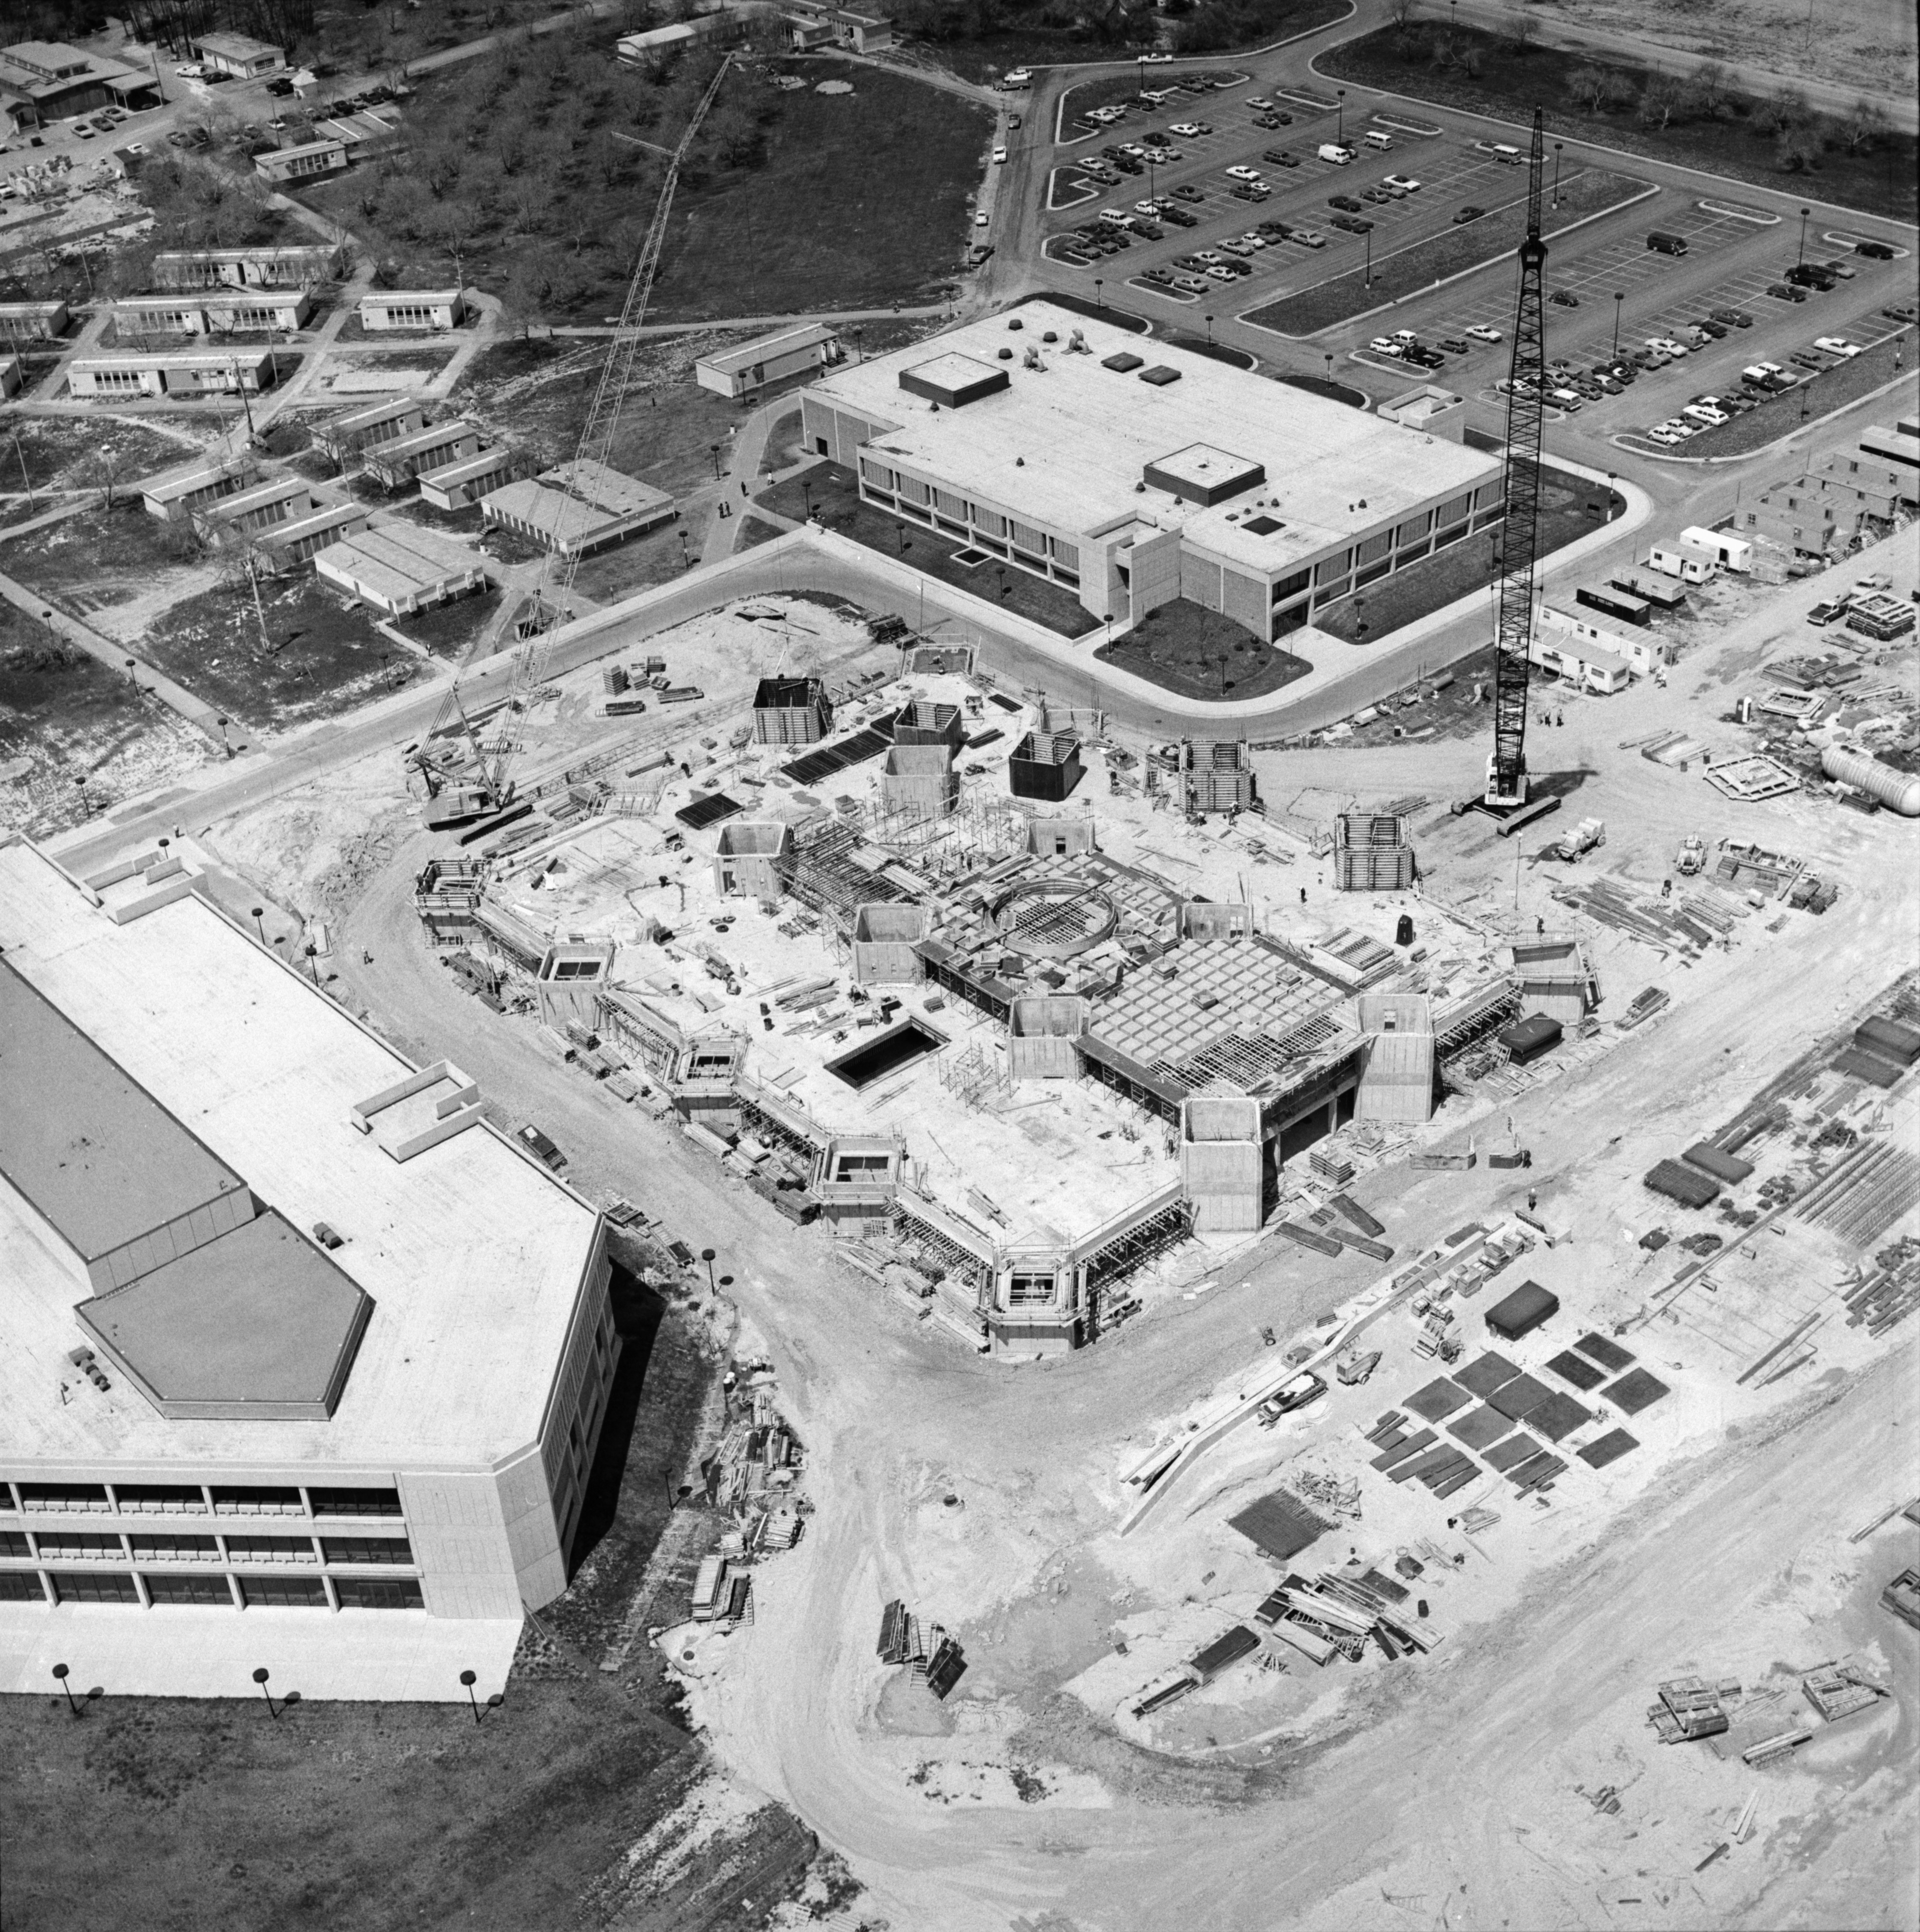 Aerial Photograph of Washtenaw Community College, May 1975 image